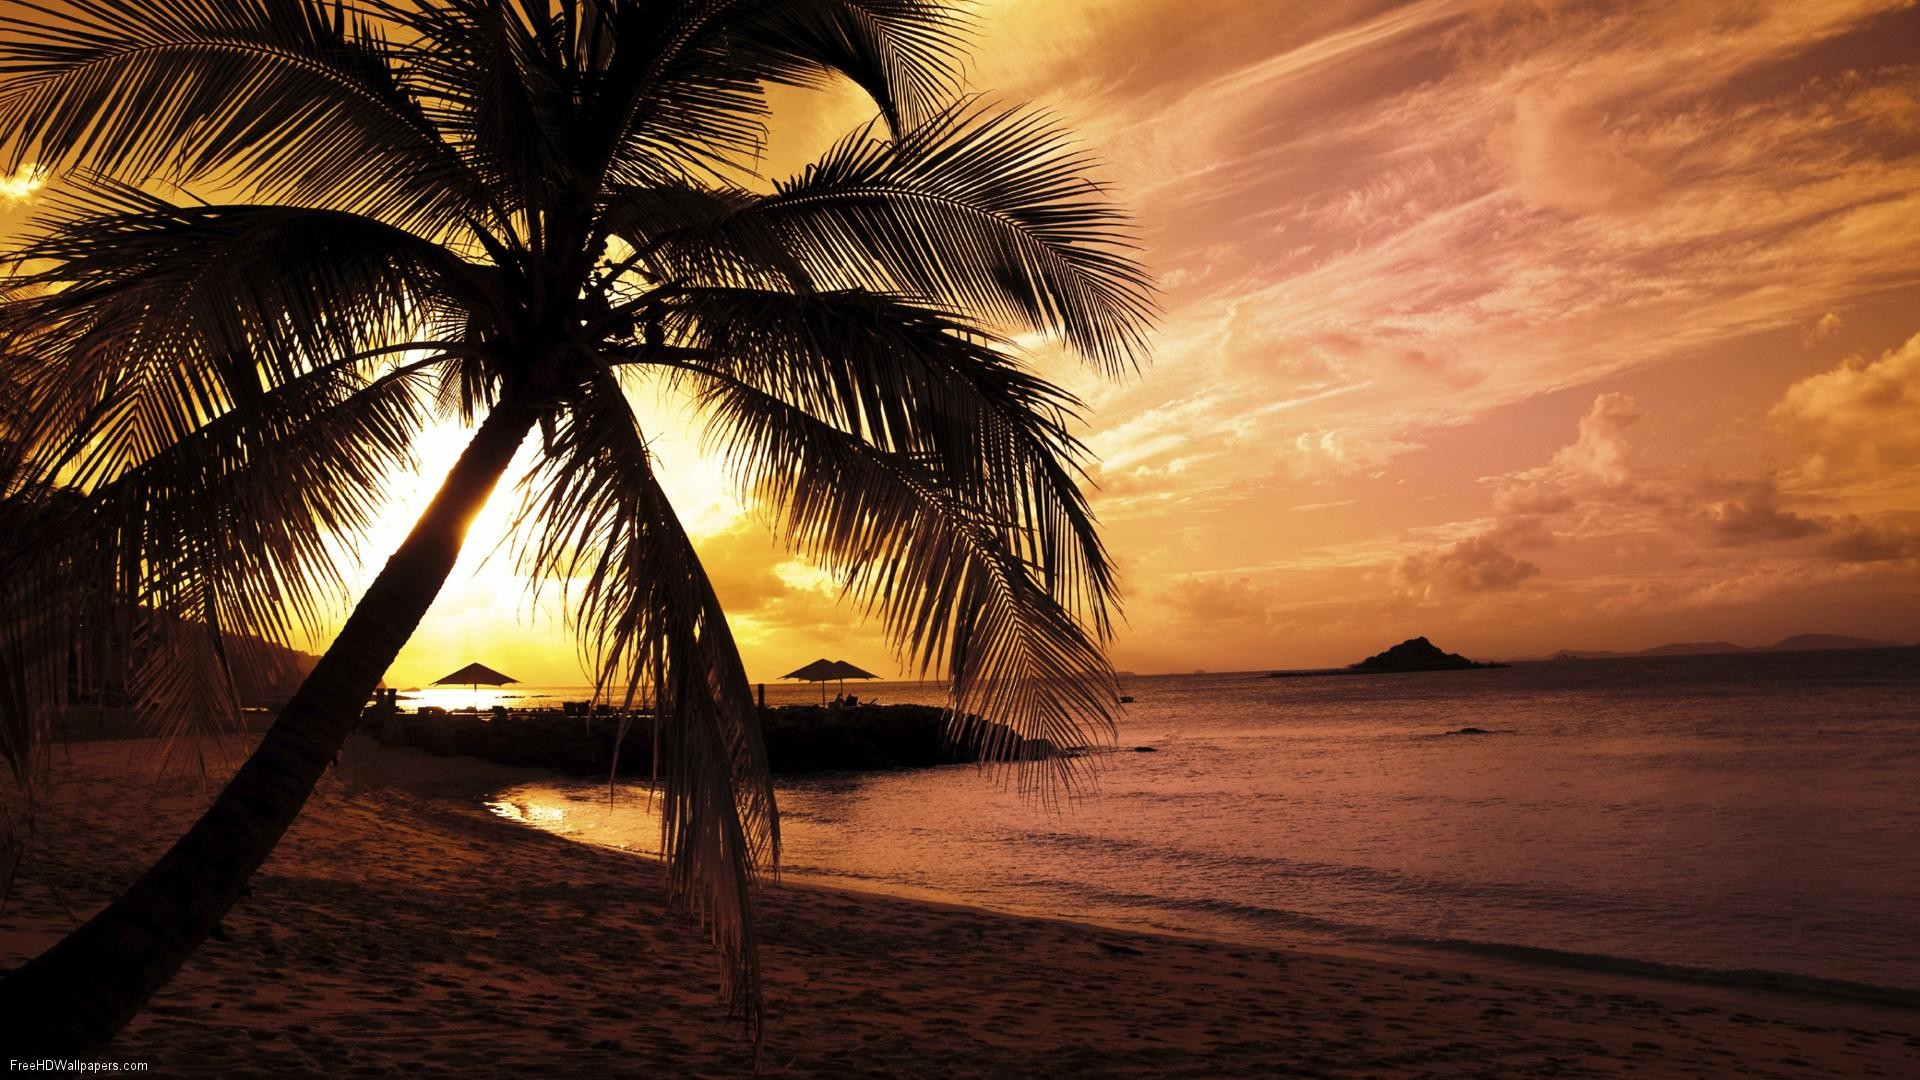 1920x1080 beach scenes | Wallpapers Beach Scenes Paradise  | #343975 #beach